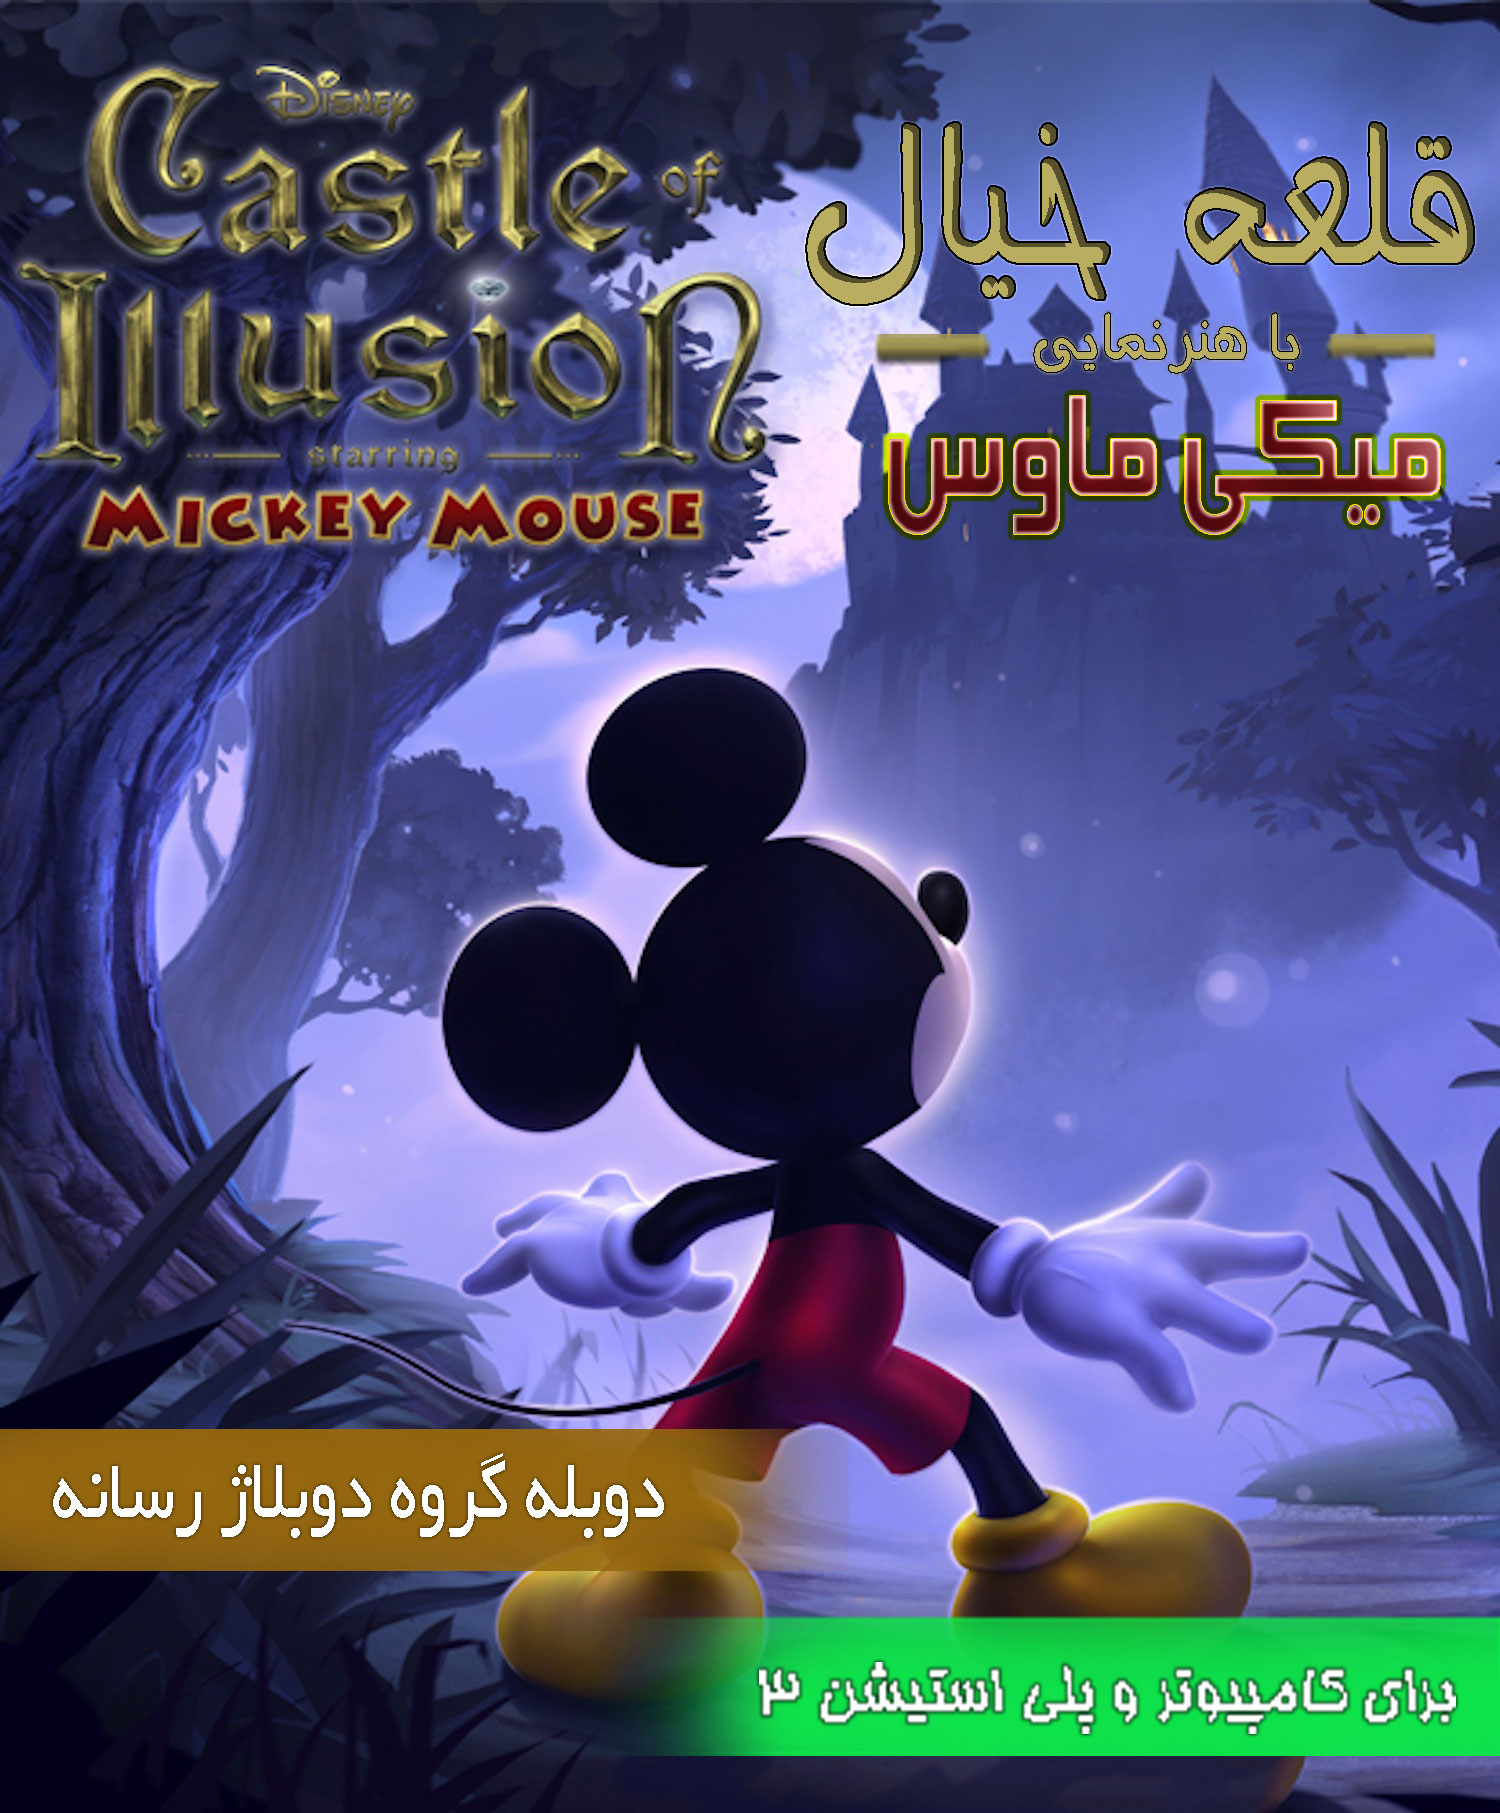 http://img5.downloadha.com/hosein/Game/June%202016/17/Castle-of-Illusion-rasaneh-cover-large.jpg